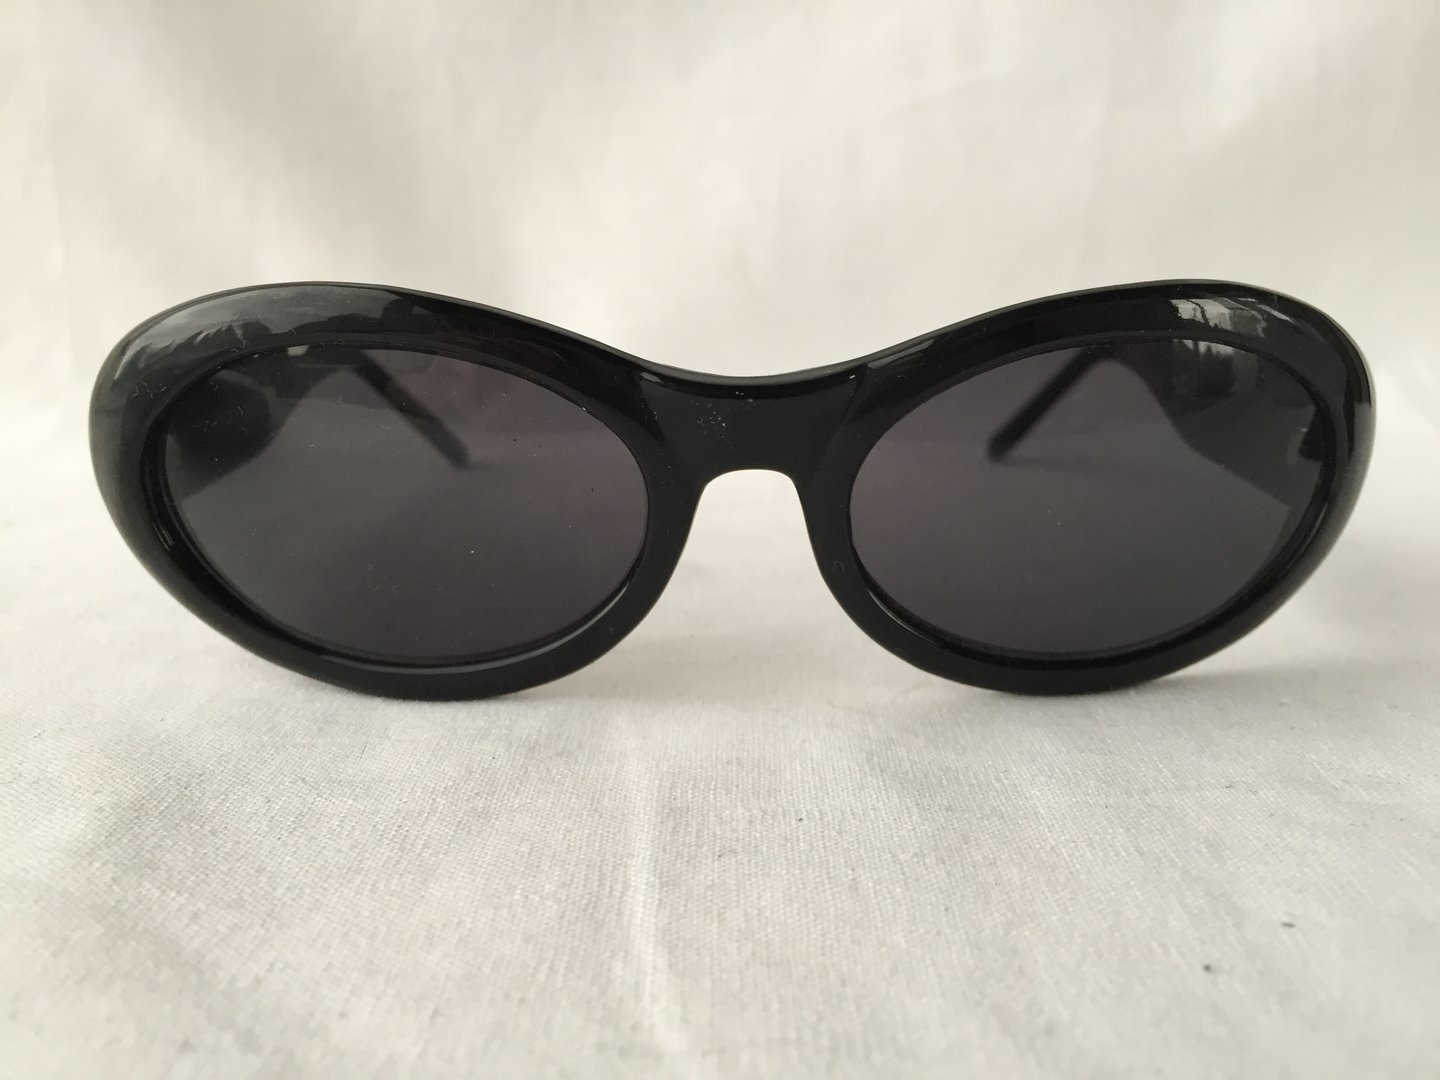 Vintage Gucci oval sunglasses black